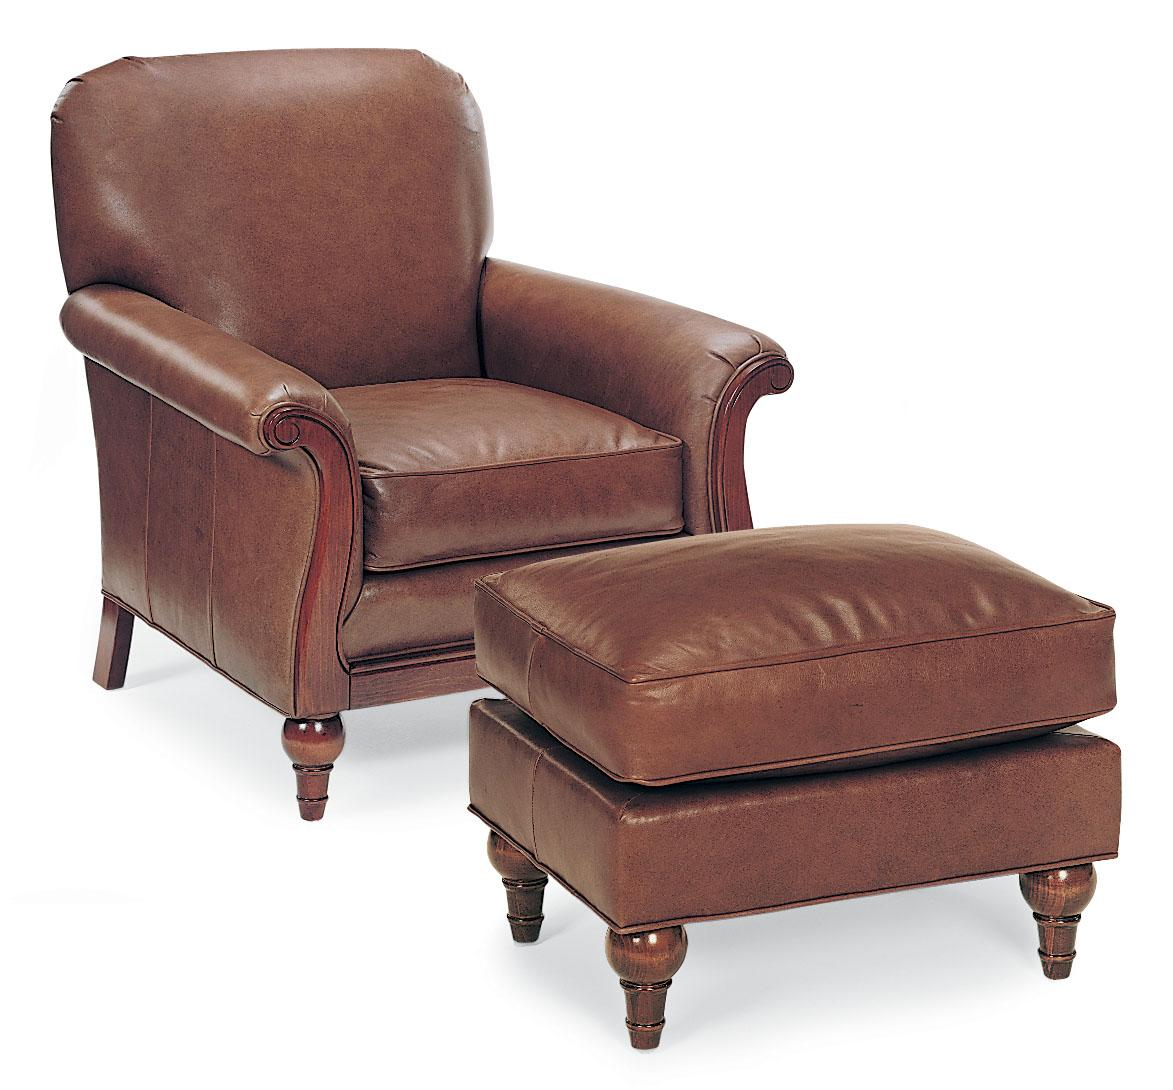 Fairfield Chairs Chair and Ottoman Combination - Item Number: 1401-01+20